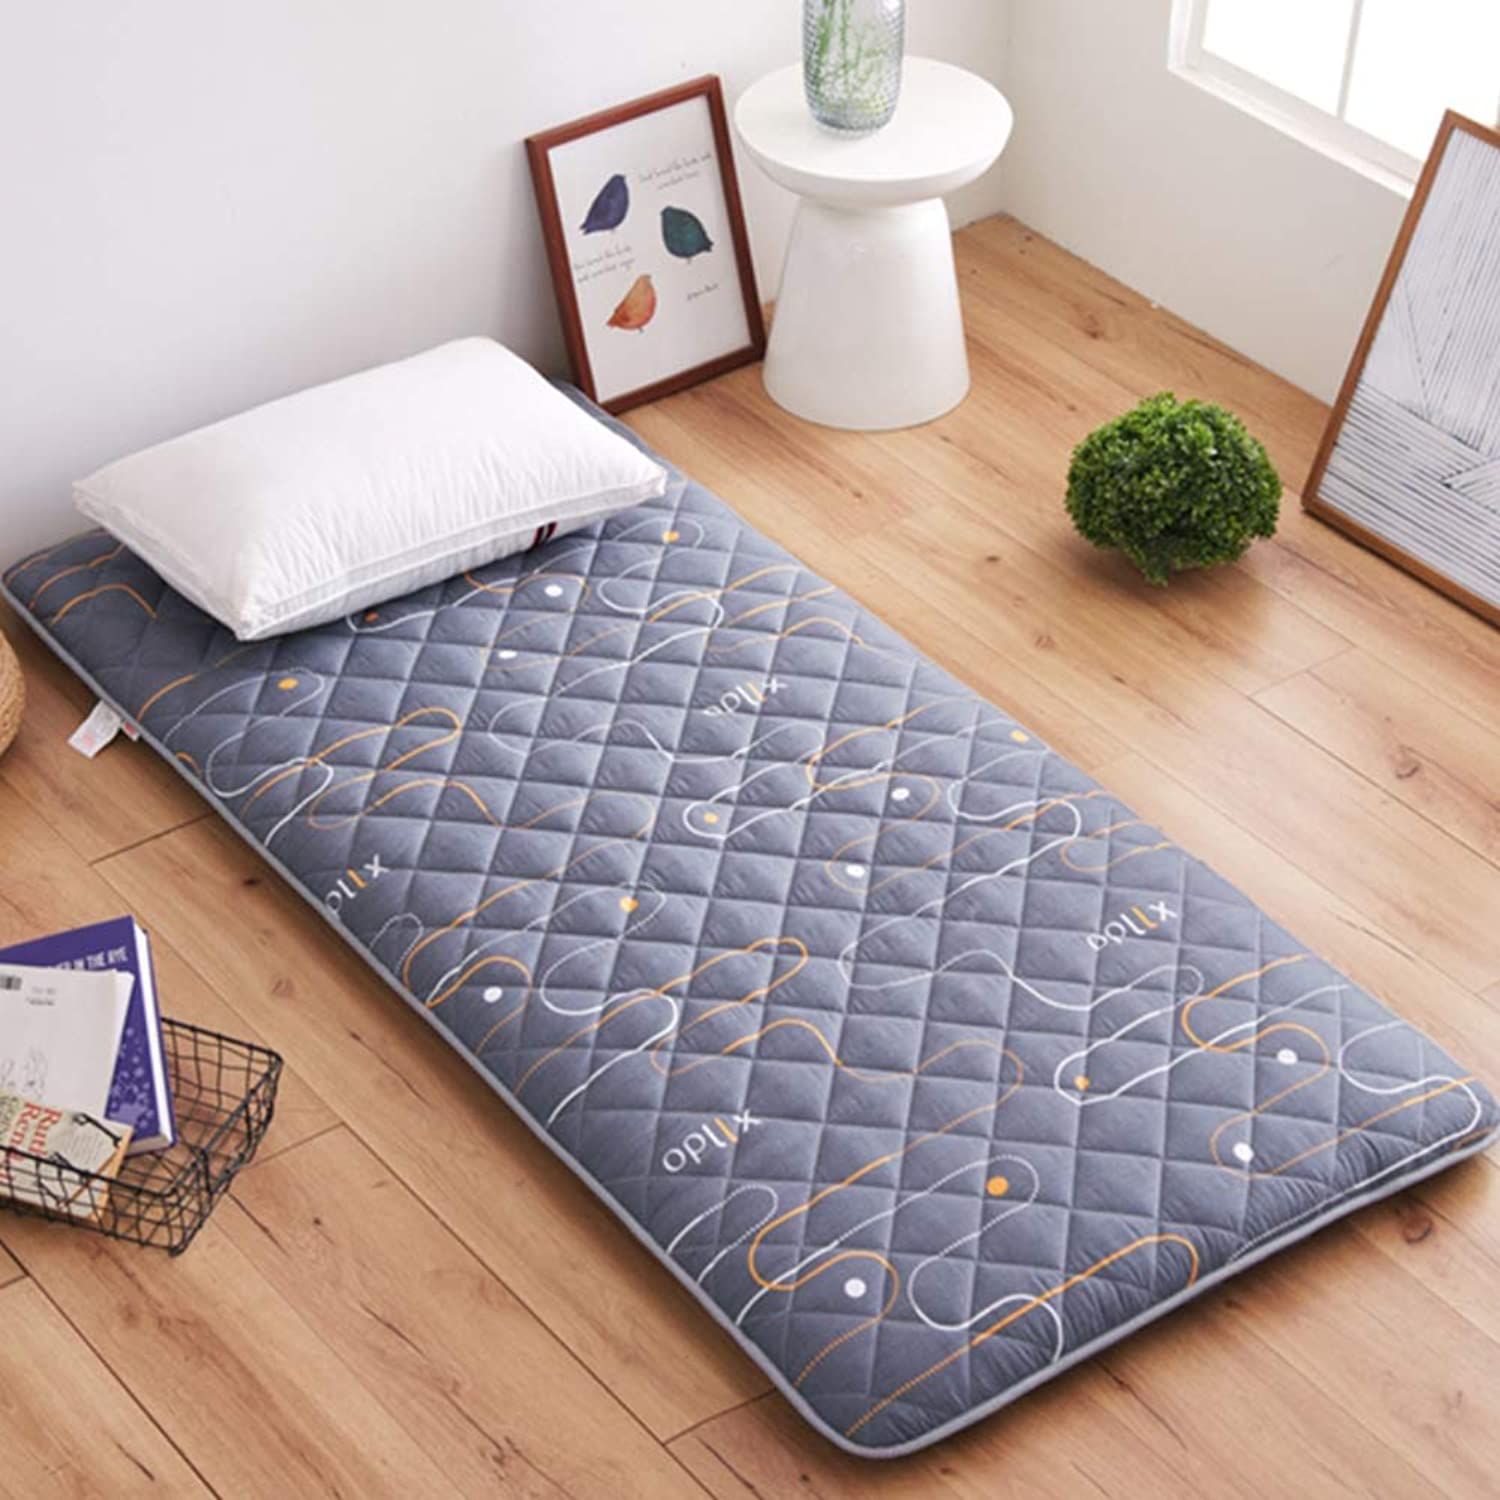 Breathable Floor Futon Mattress Mat, Tatami Foldable Breathable Multi Size Japanese Mattress Pad Topper for Student Dormitory -e King